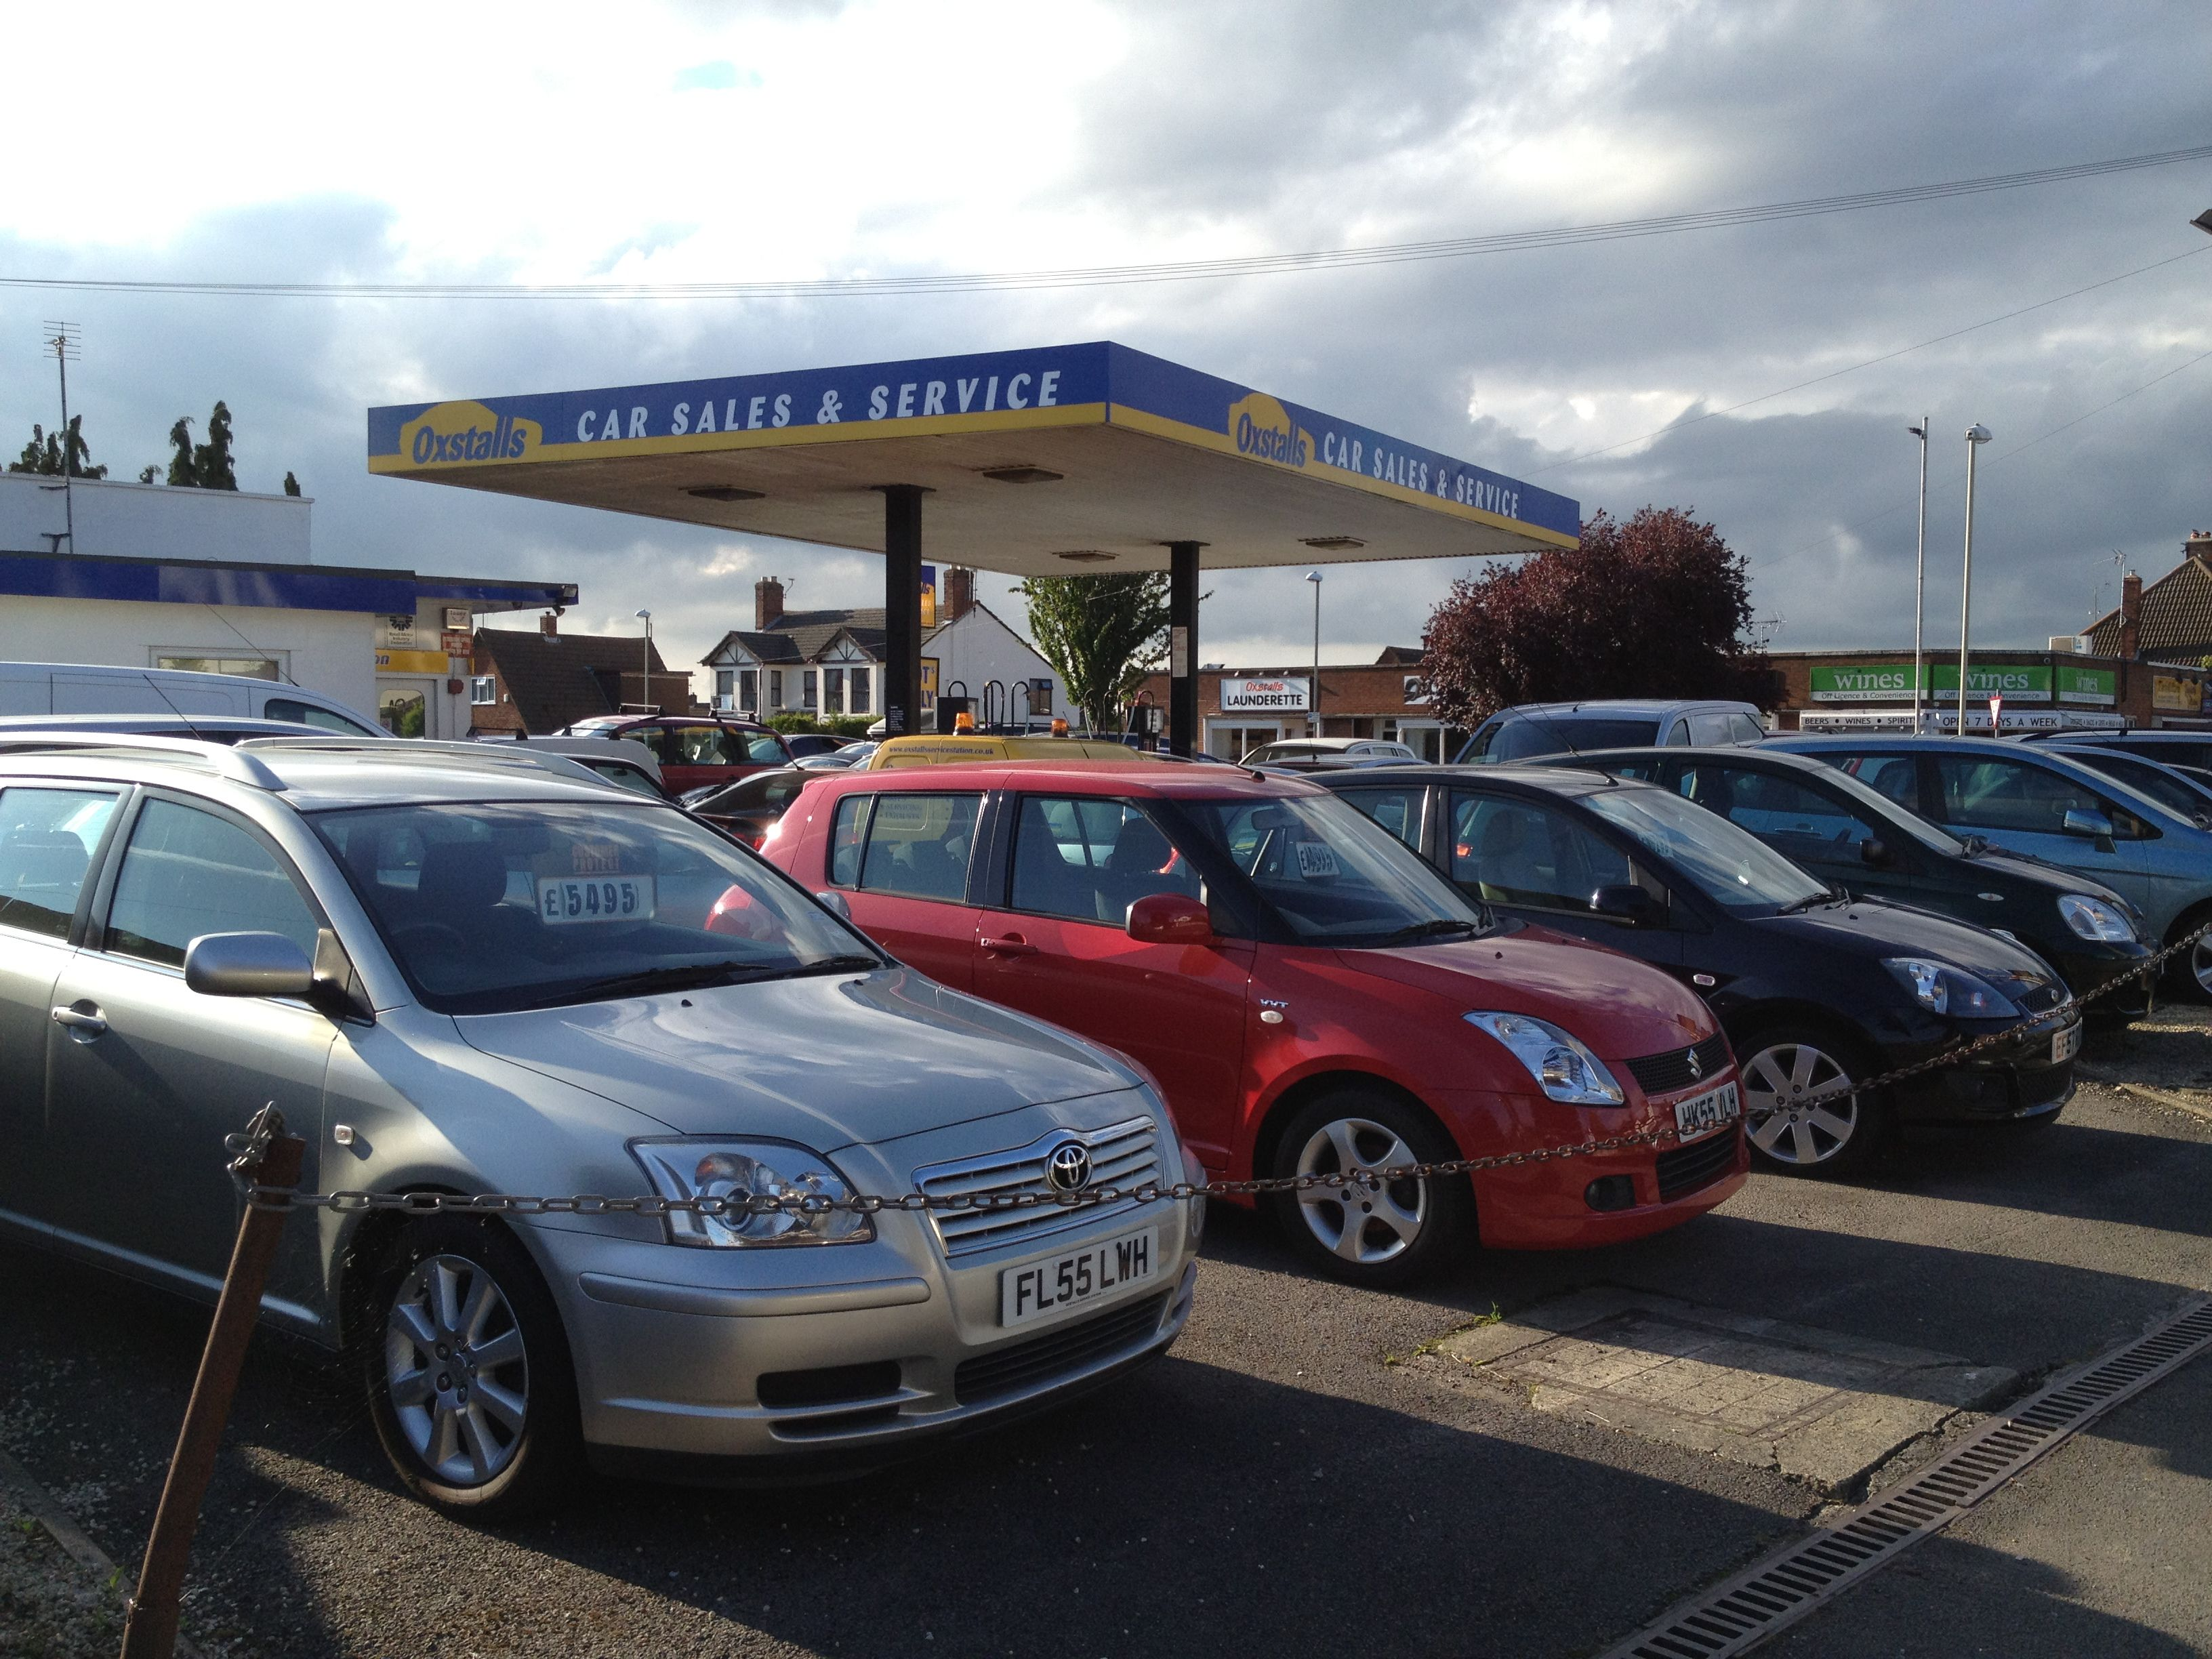 Used Cars for Sale Inspirational Fresh Second Hand Cars for Sale Allowed to My Website within This